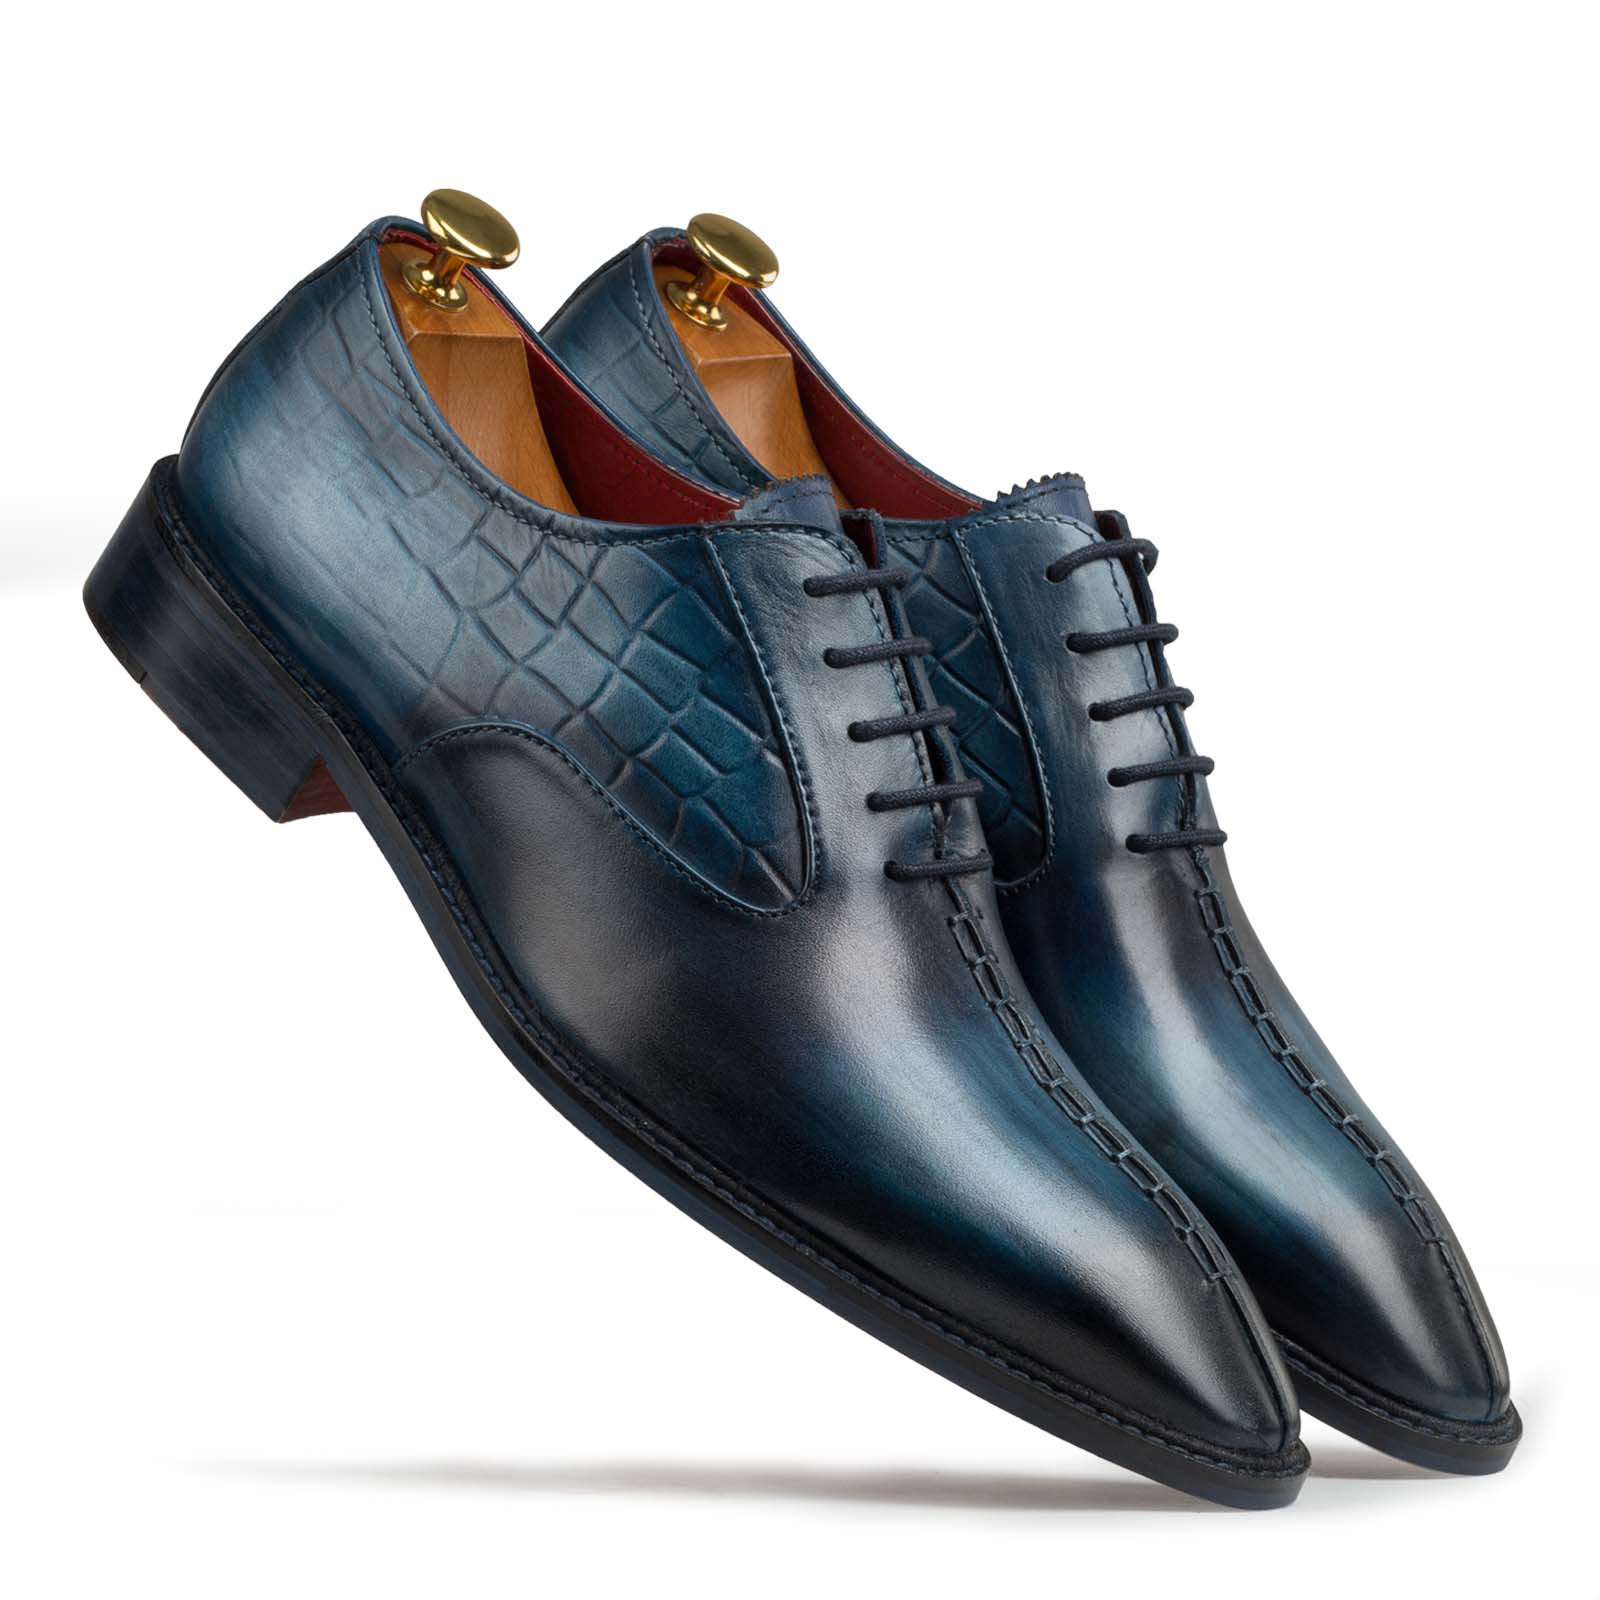 Formal Leather Shoes For Men's. Escaro